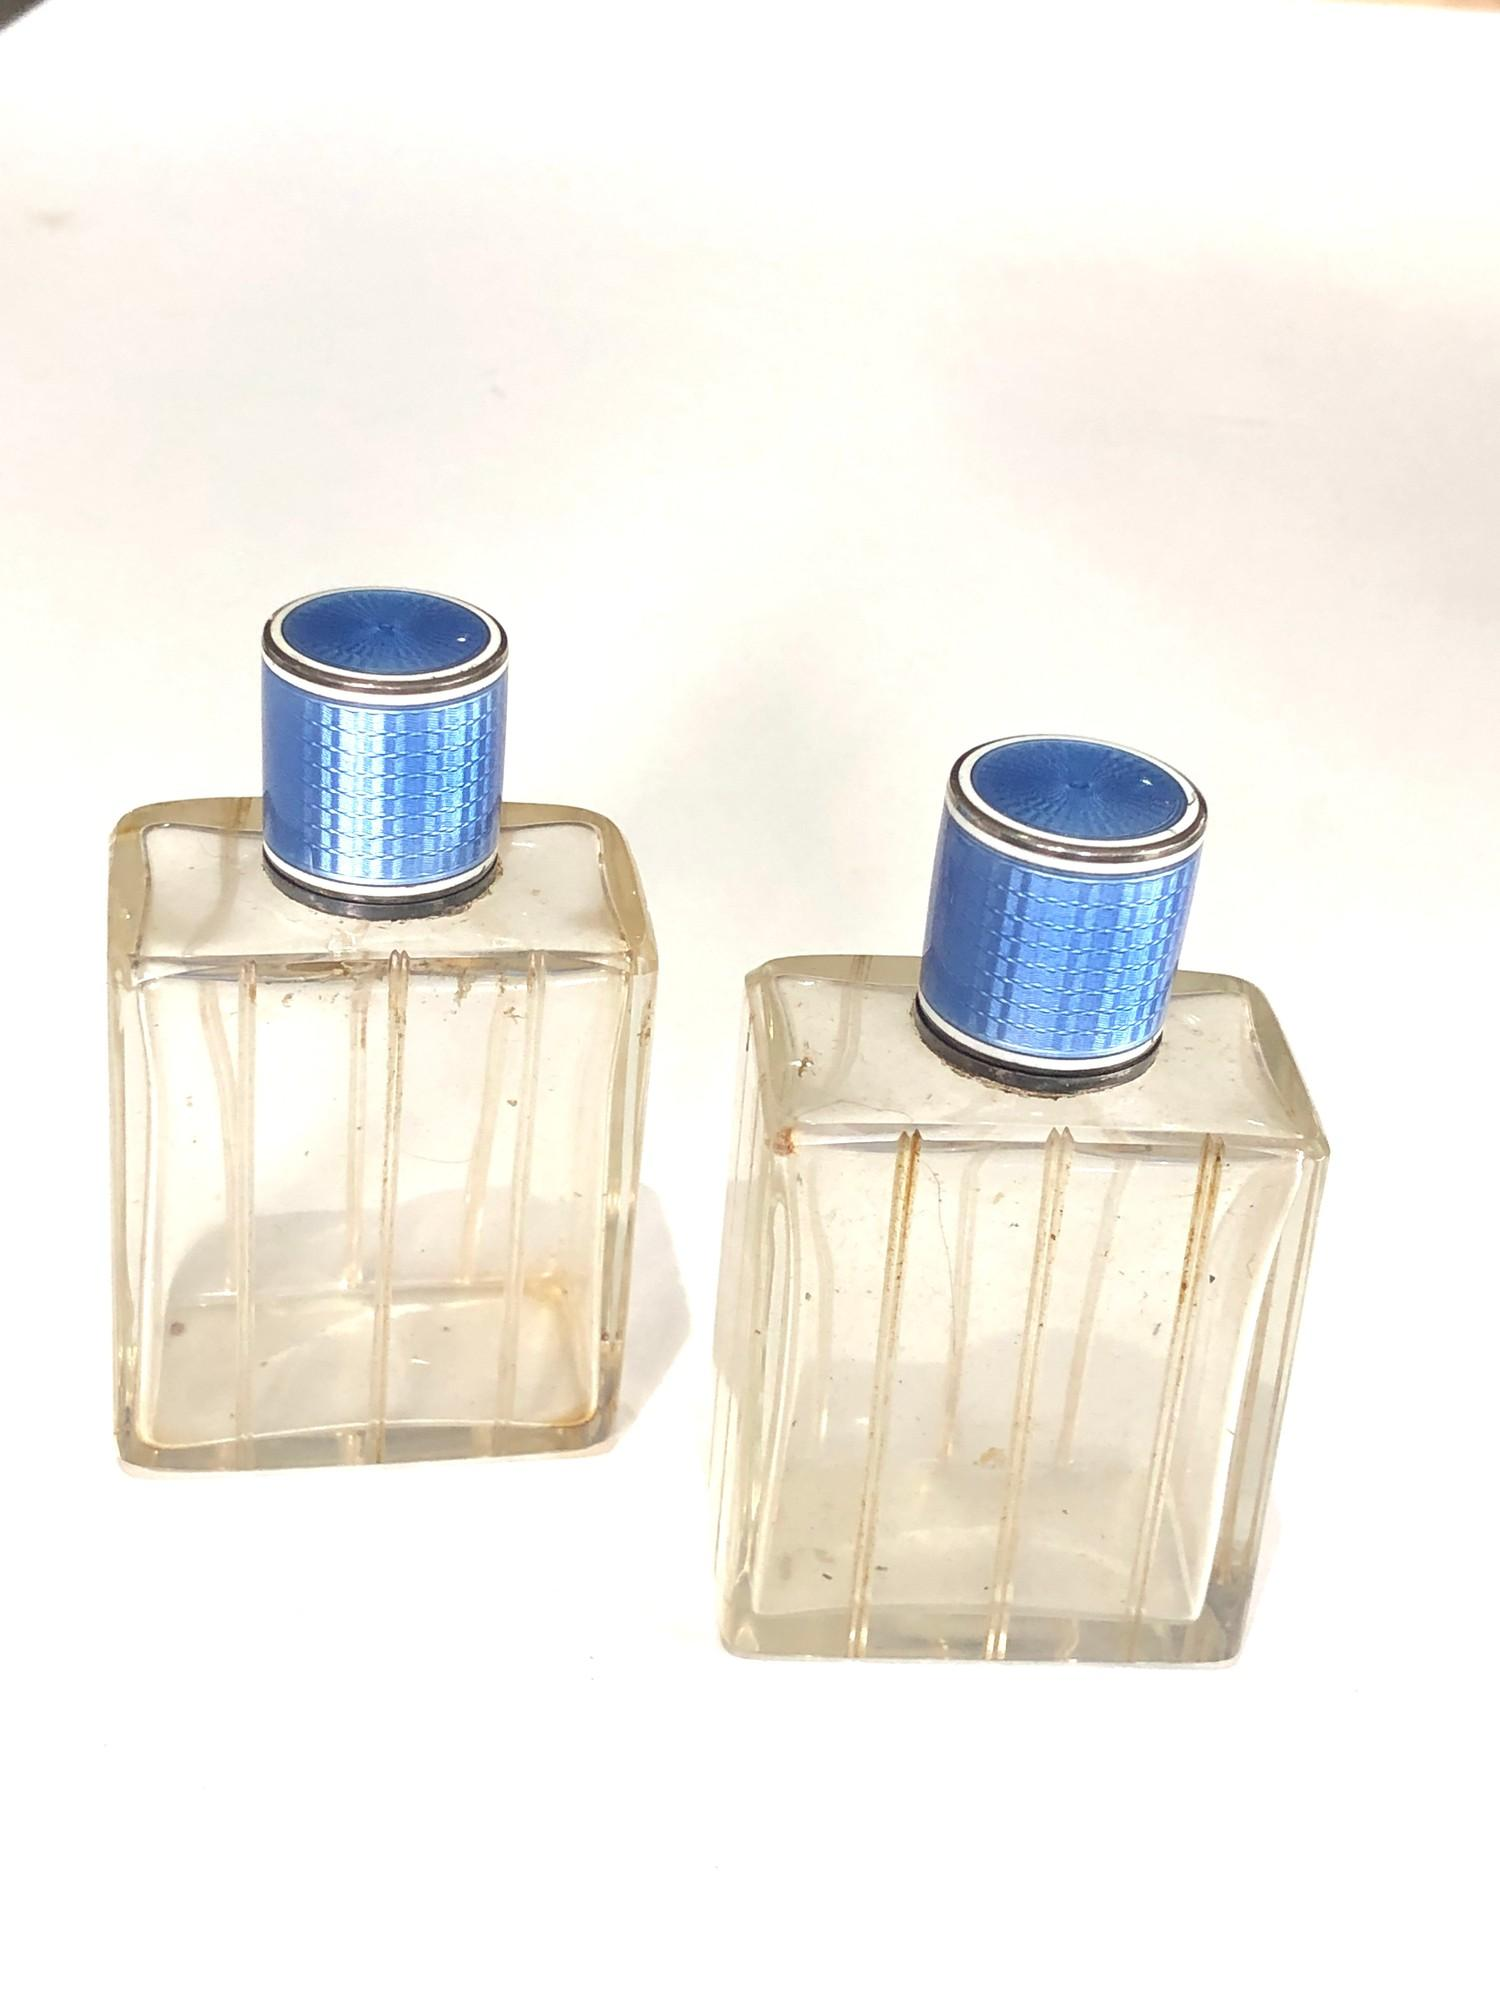 Pair of antique French silver and enamel perfume bottles complete with stoppers in good uncleaned